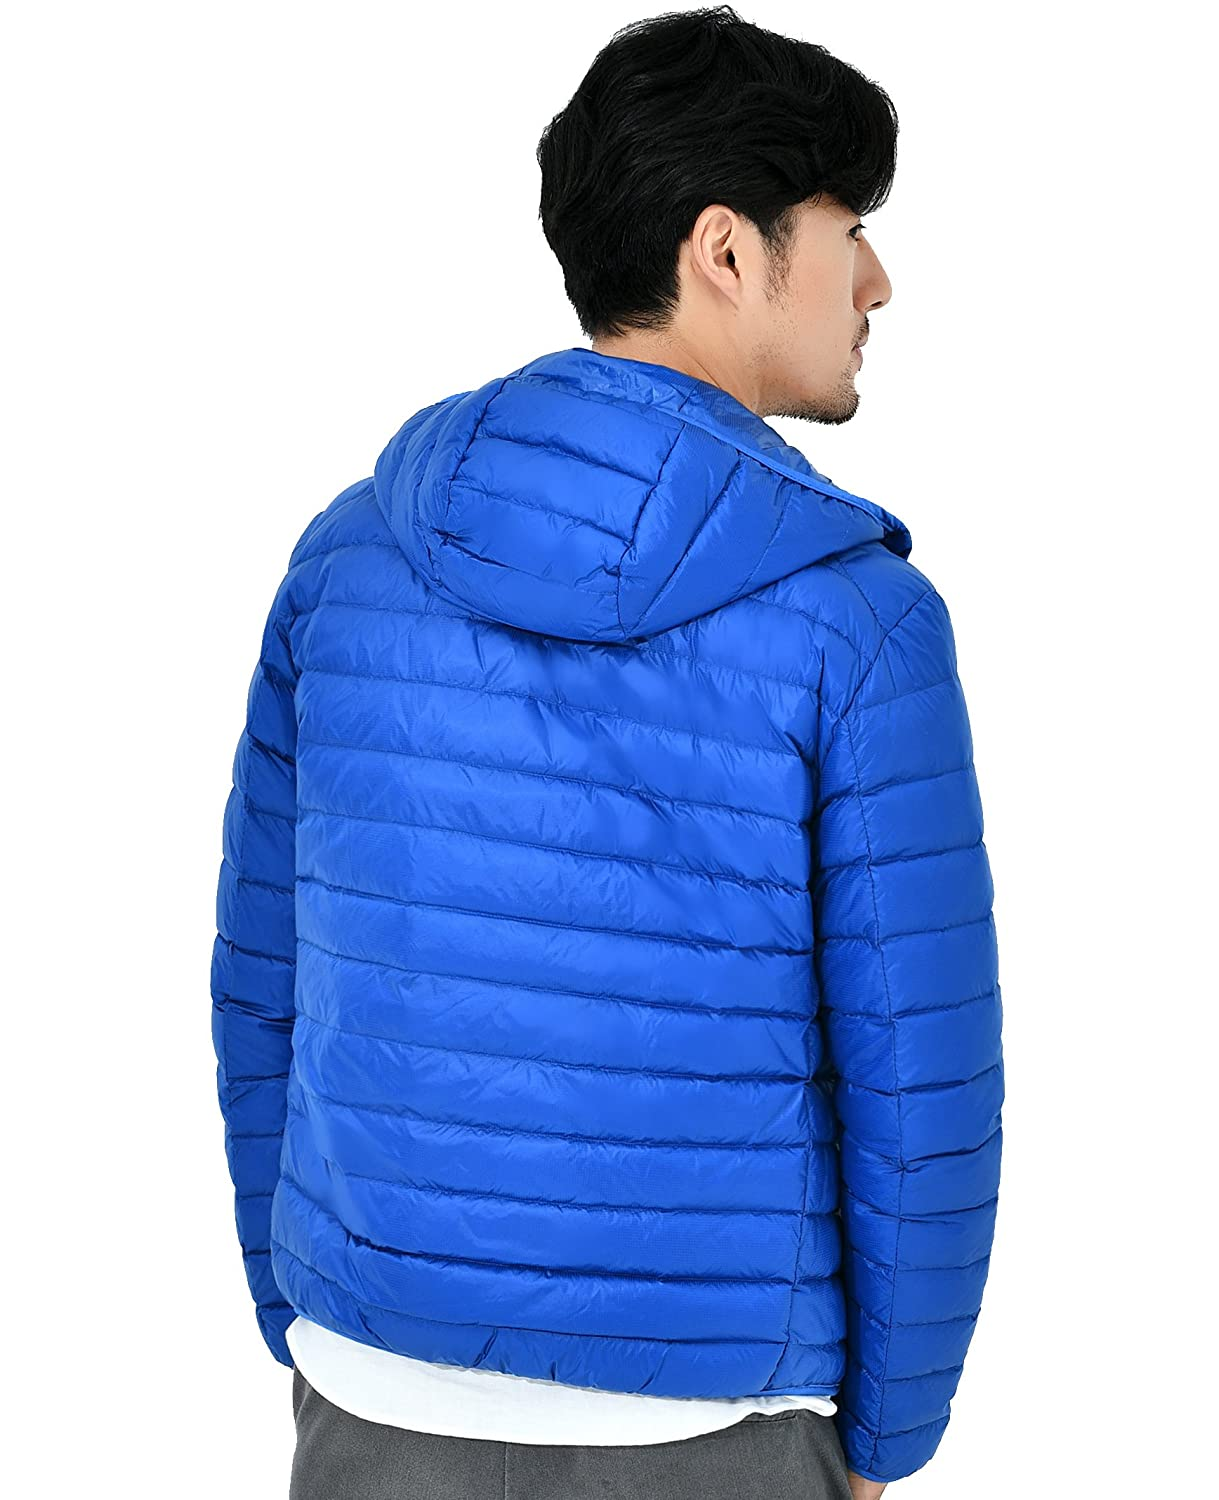 KUPARK Mens Lightweight Packable Down Jacket Hooded Outwear Down Coats